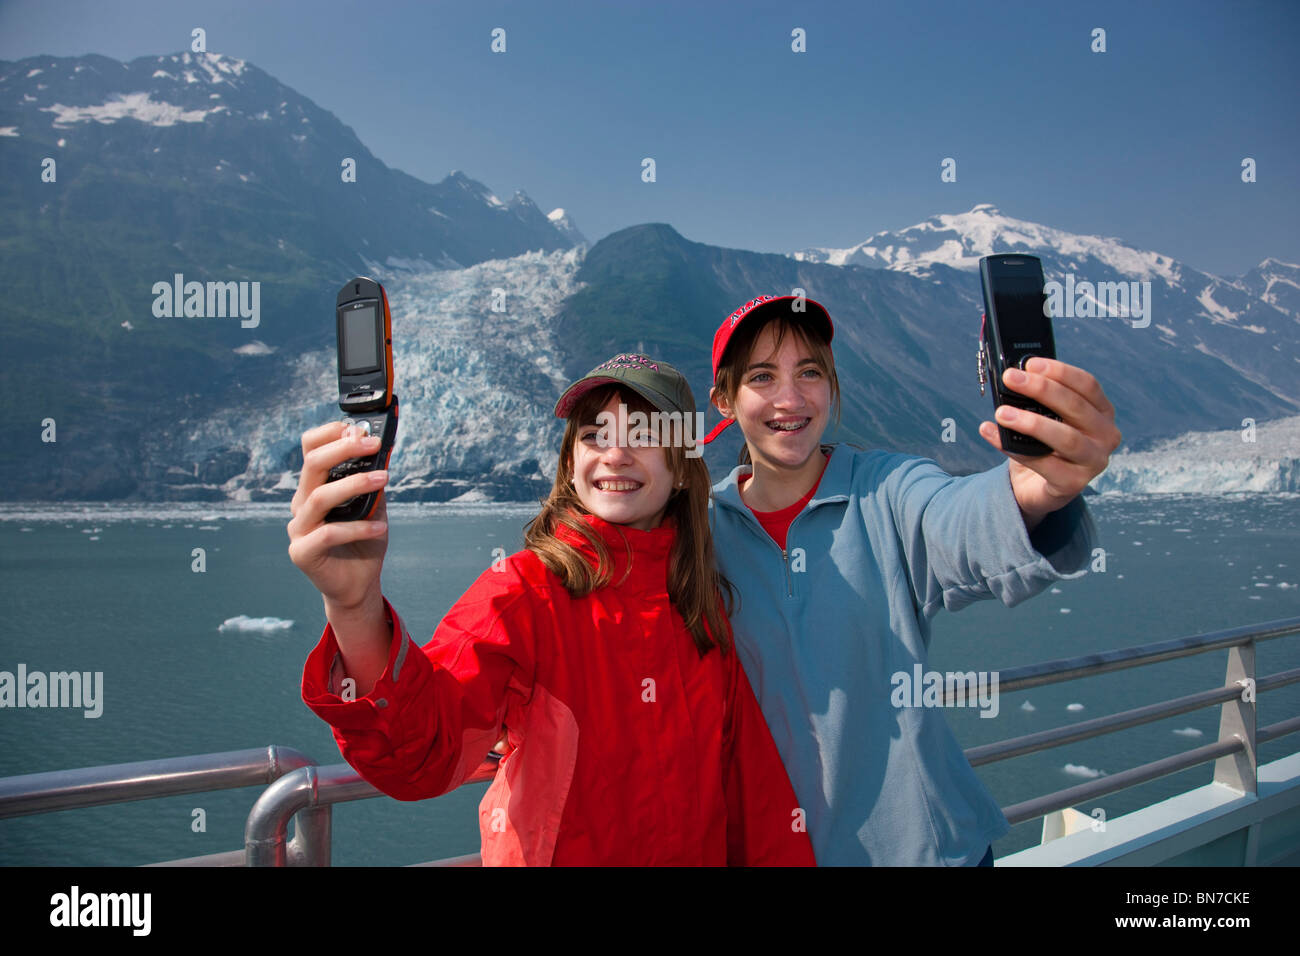 Teenage sisters taking photos of themselves with a cell phone near Harriman Glacier, Prince William Sound, Alaska - Stock Image